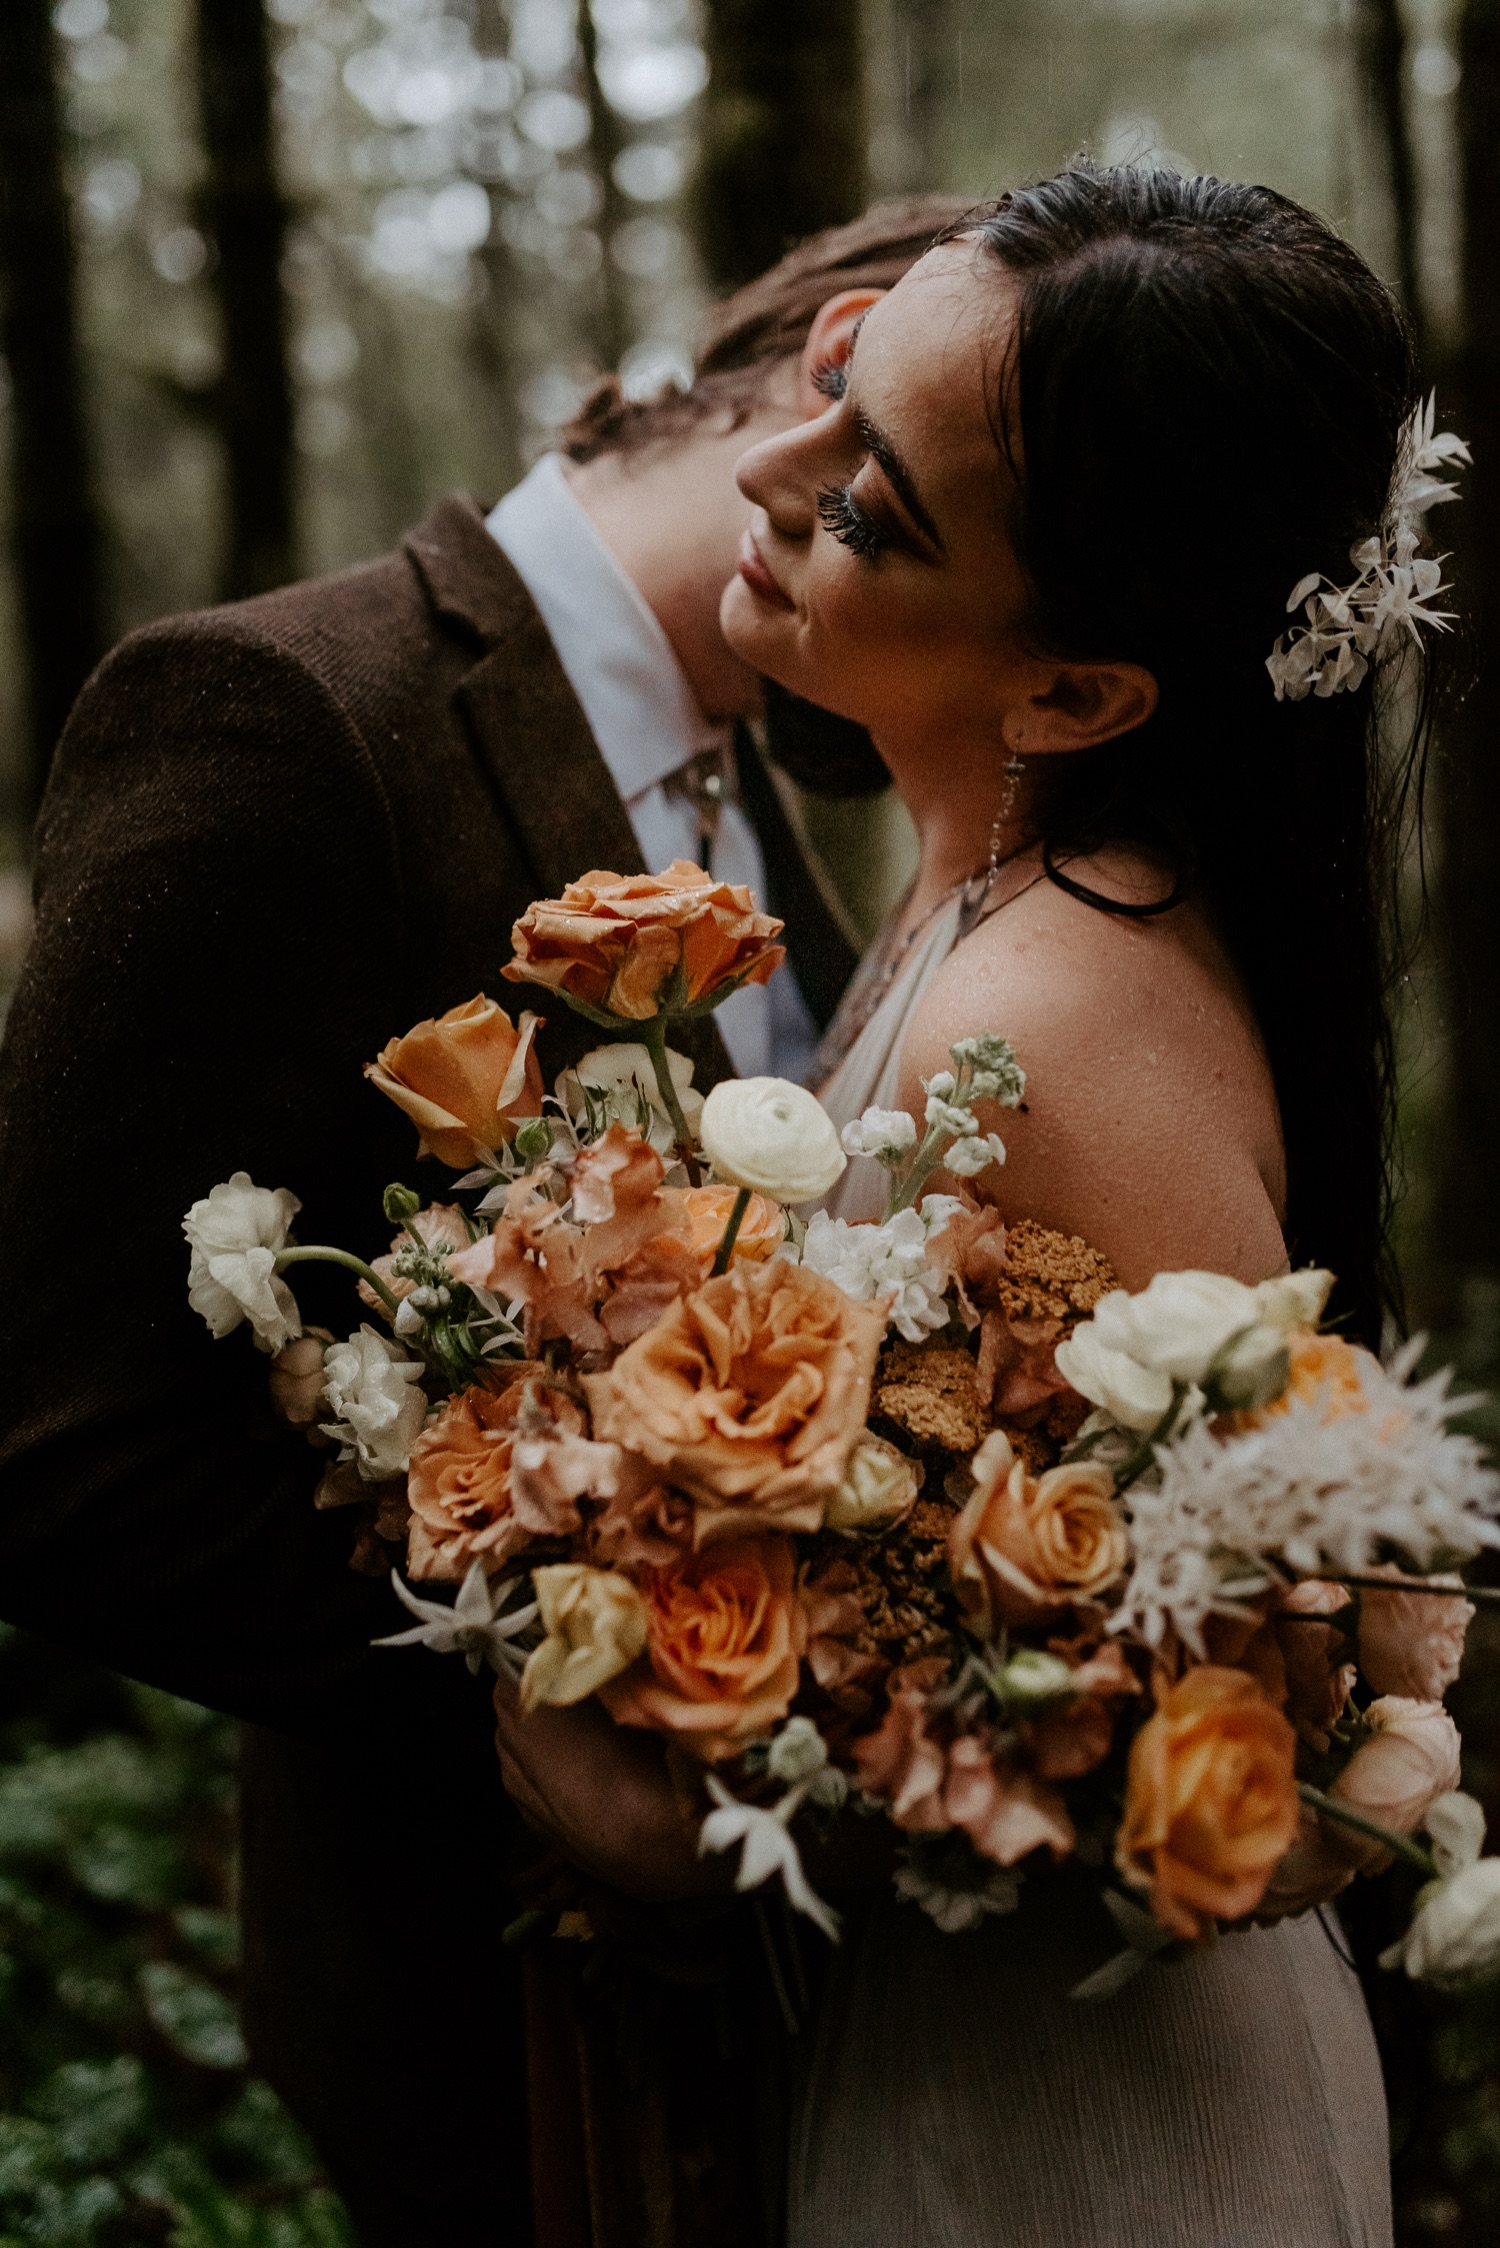 The Woodlands House Sandy Oregon Elopement Portland Elopement Photographer PNW Adventurous Elopement Anais Possamai Photography 043